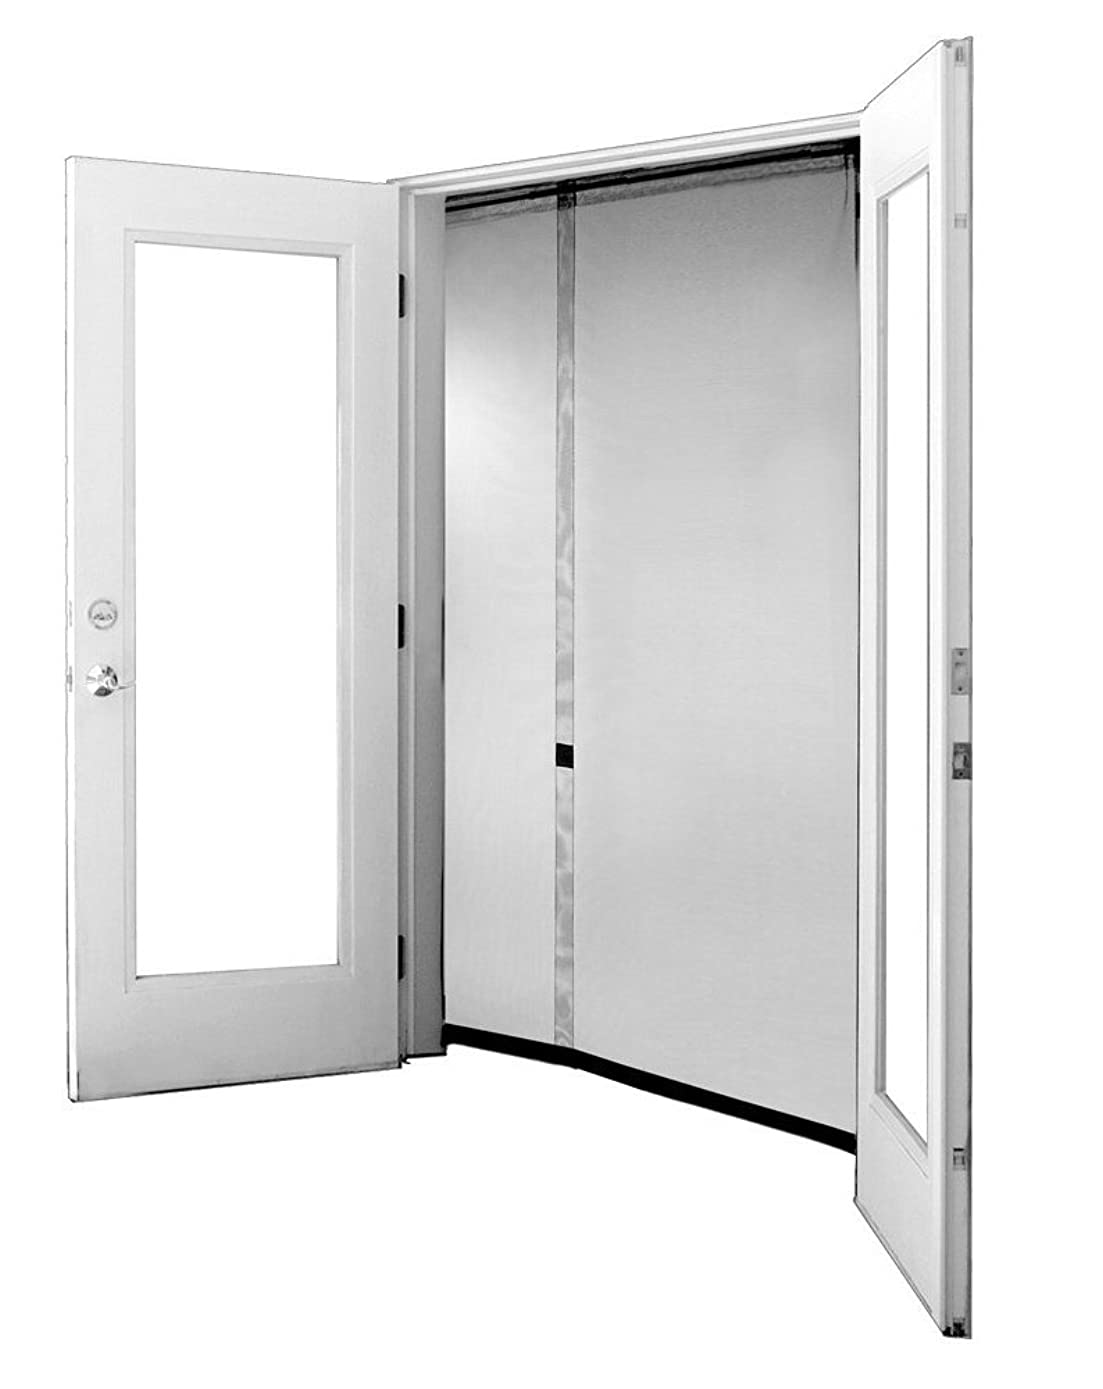 Bug Off 72R by 80 Instant Screen - Reversible Fits French Doors and Sliding Glass Doors